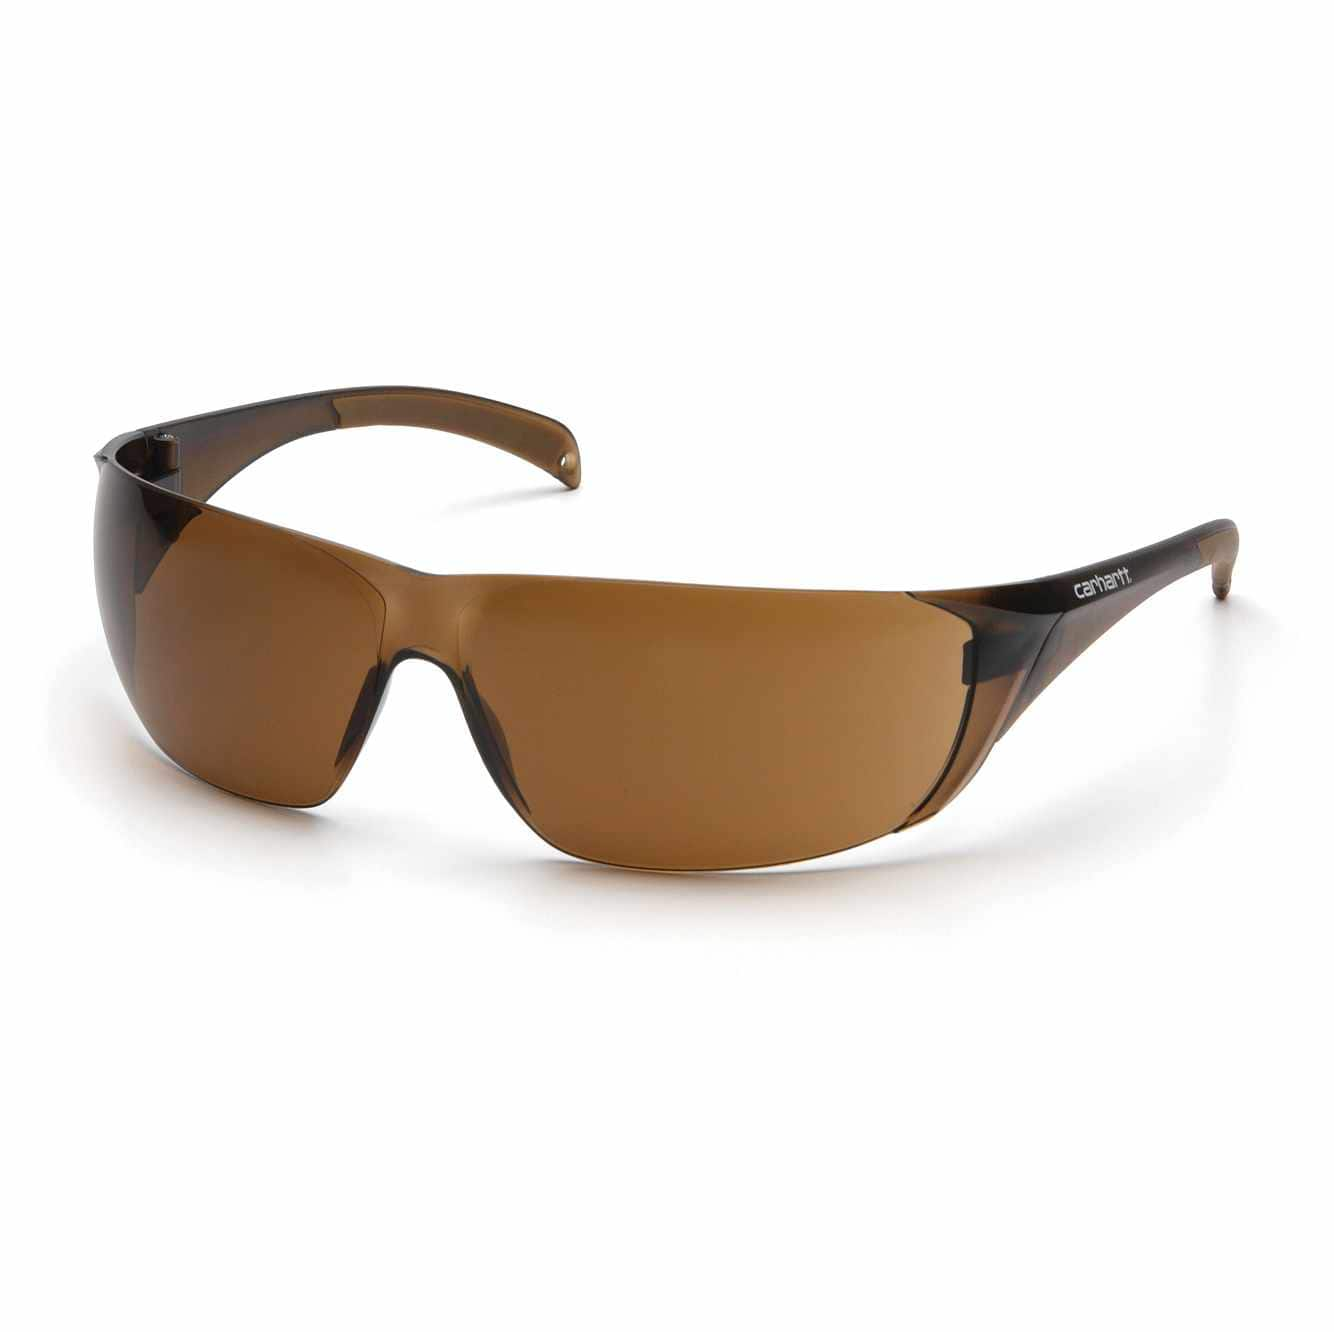 Picture of Billings Safety Glasses in Bronze